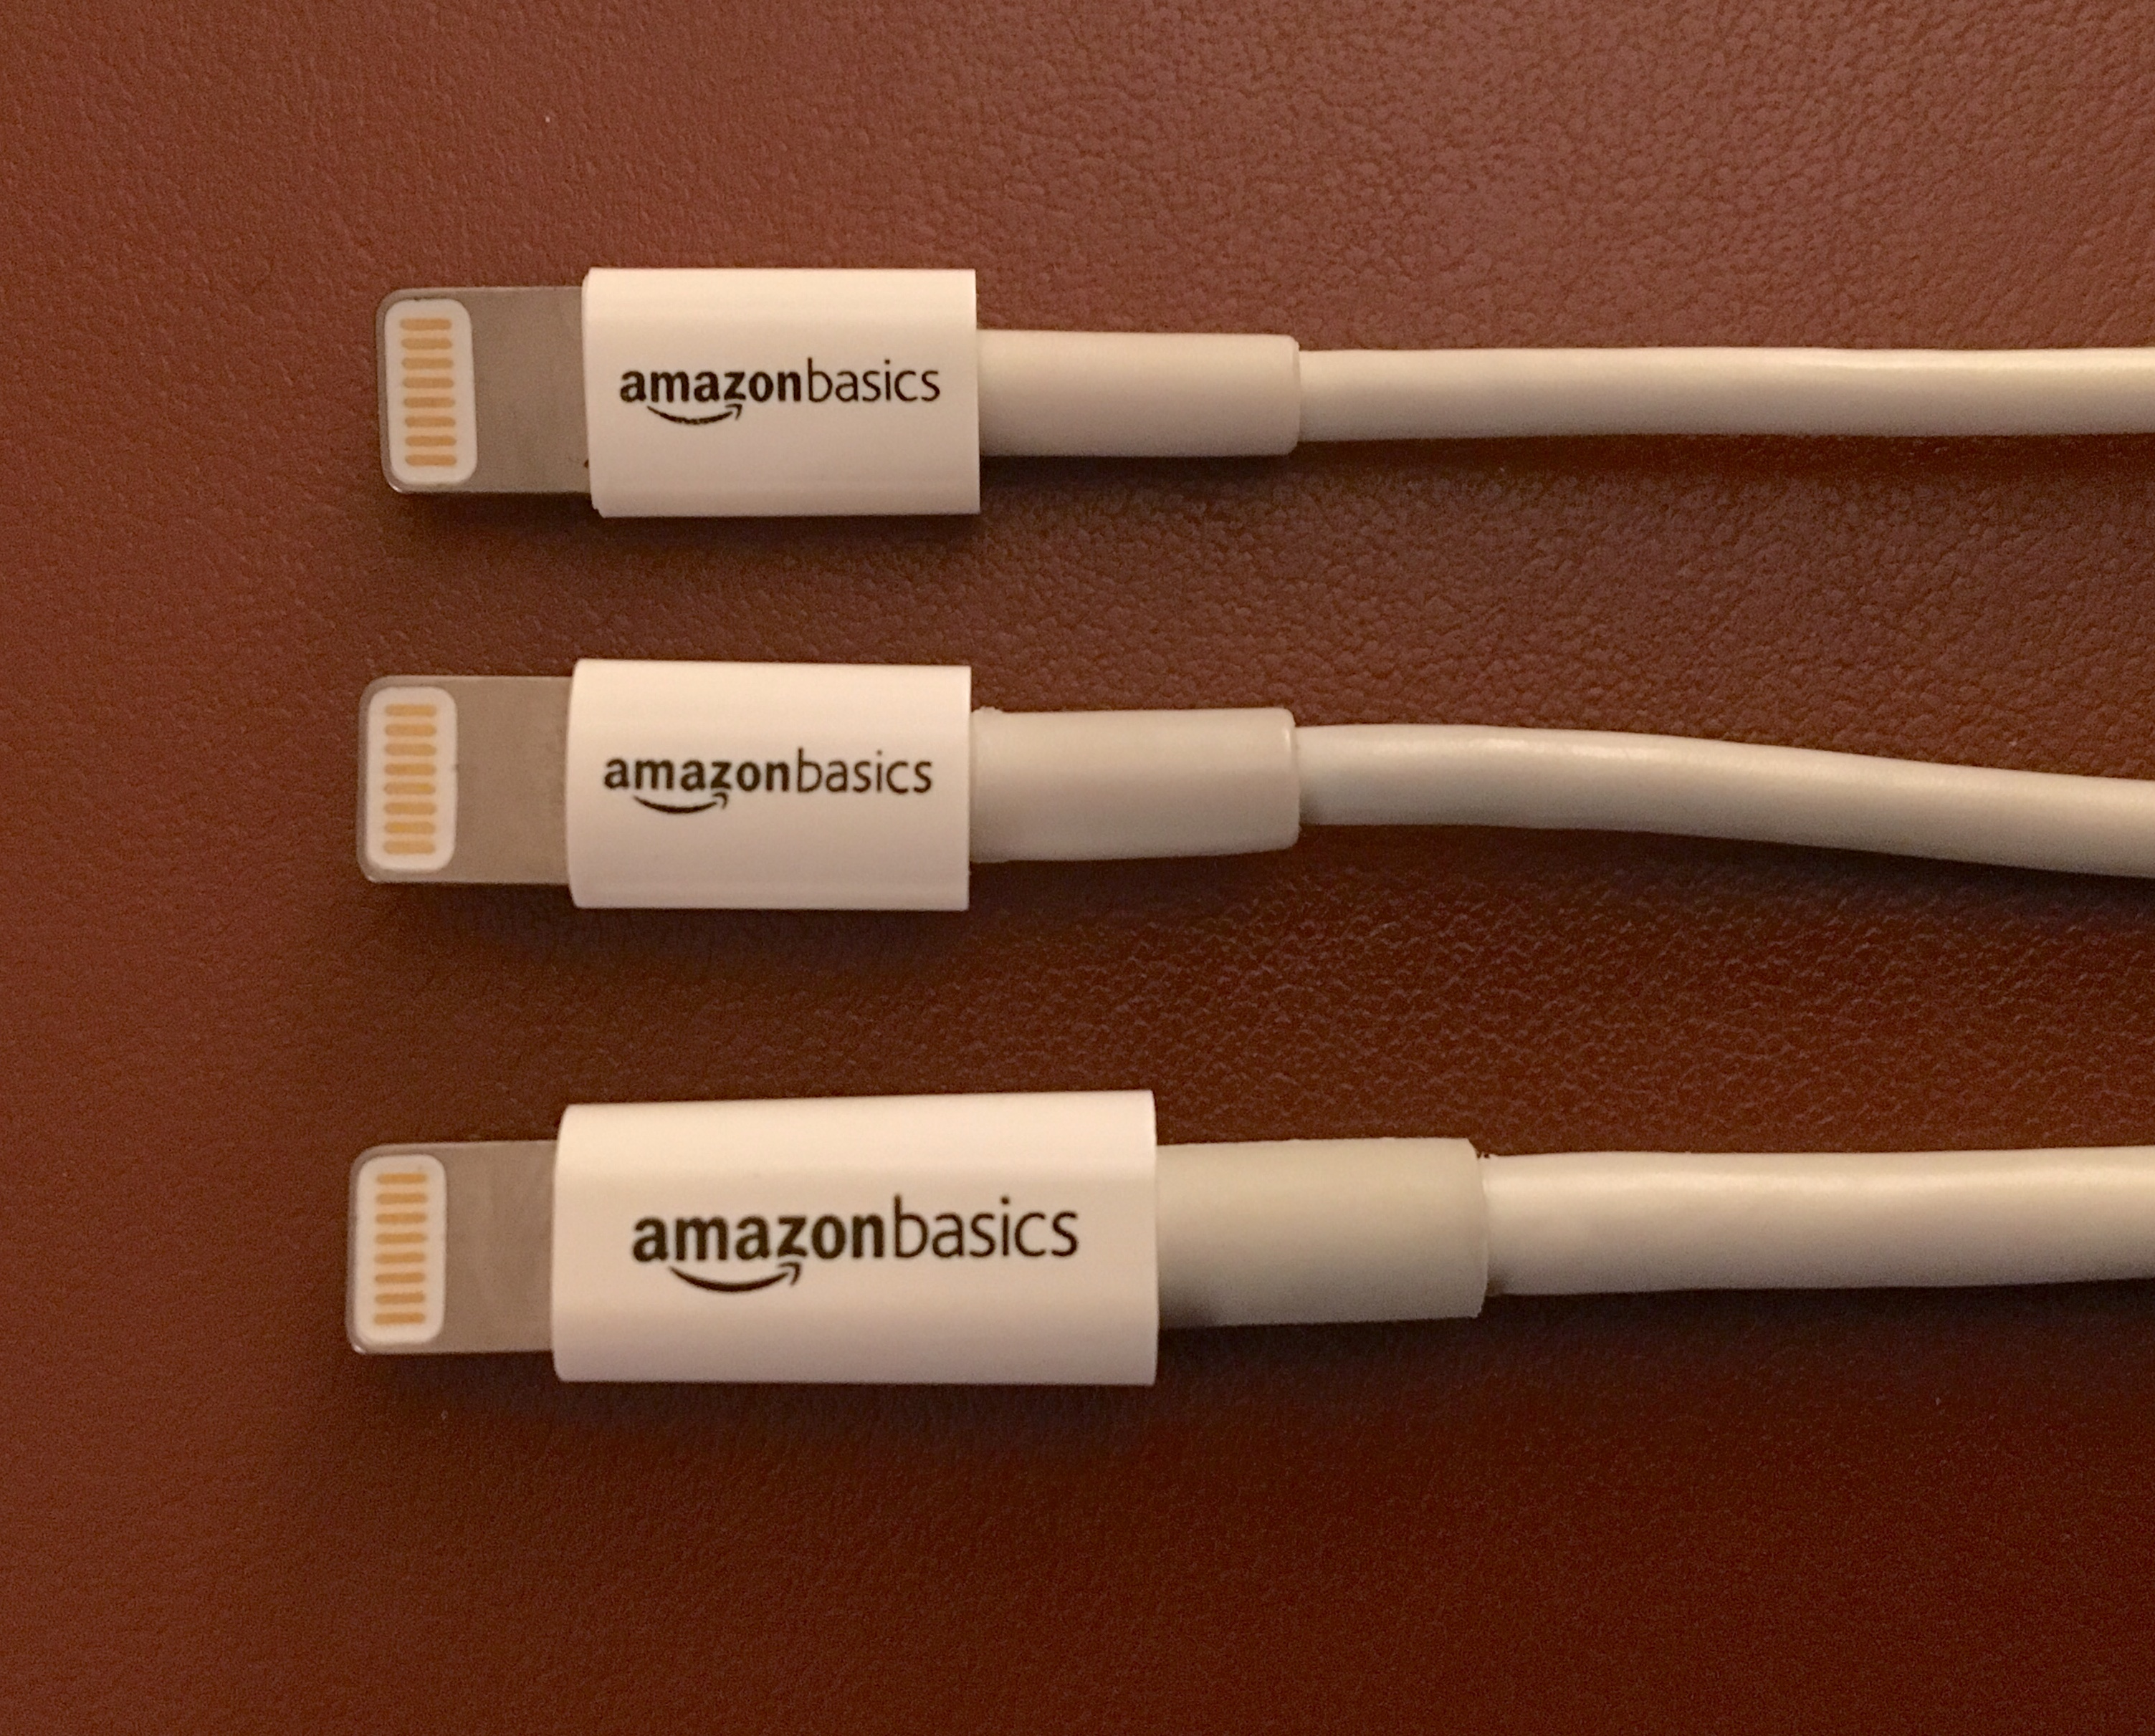 Amazon 3-ft, 6-ft, and 10-ft lightning cables